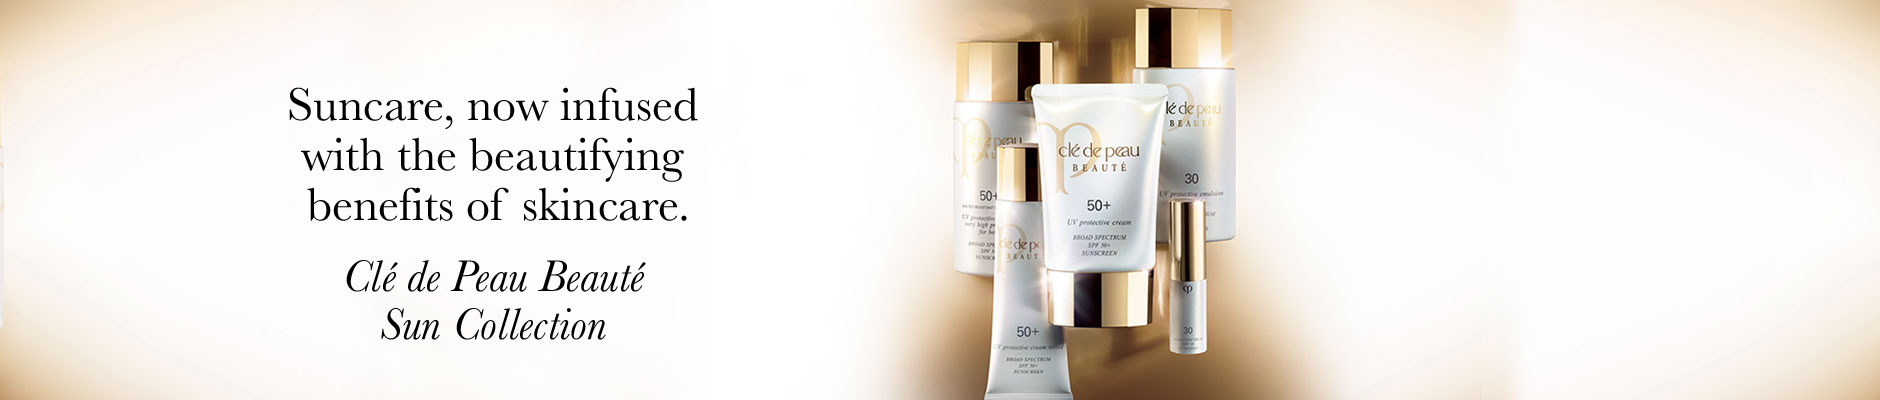 Suncare, now infused with the beautifying benefits of skincare. - Cle de Peau Beaute Sun Collection